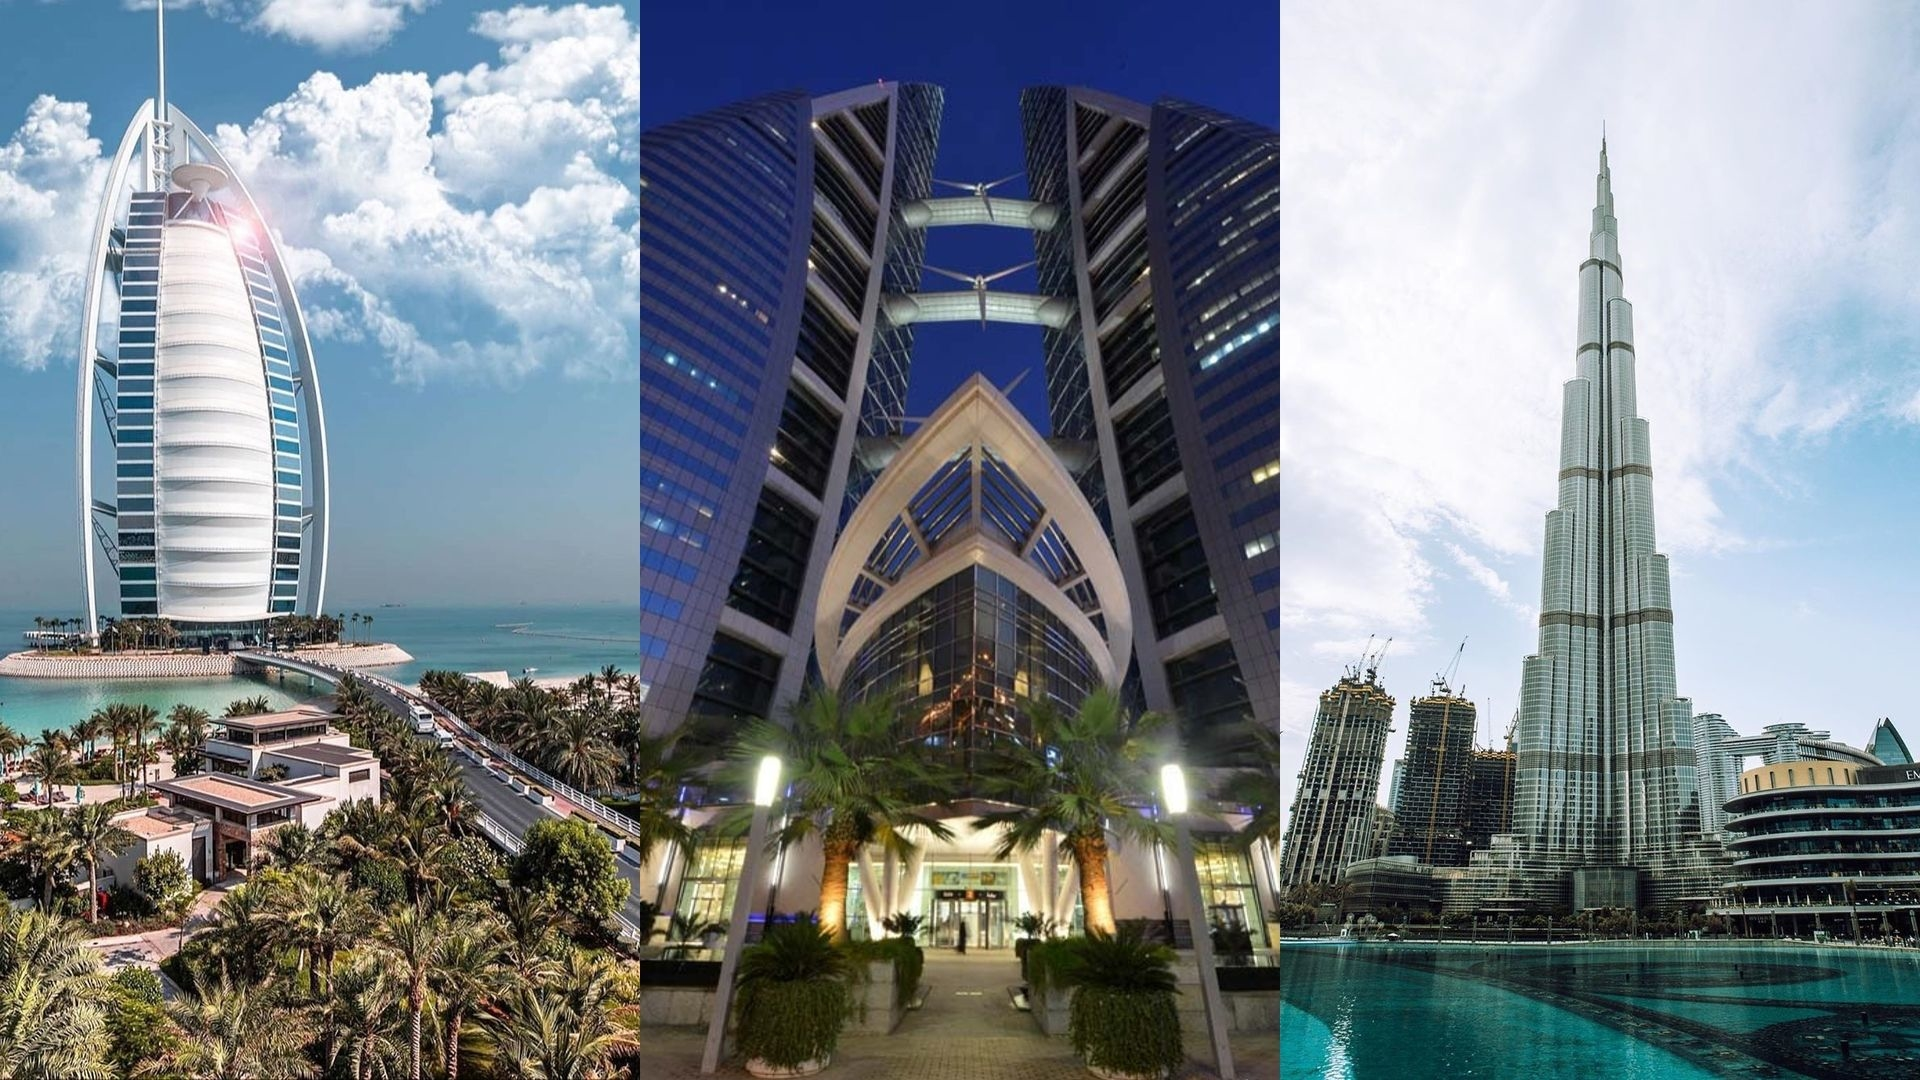 The 50 Most Influential Buildings Have Been Announced And The Middle East Made The List – Obviously